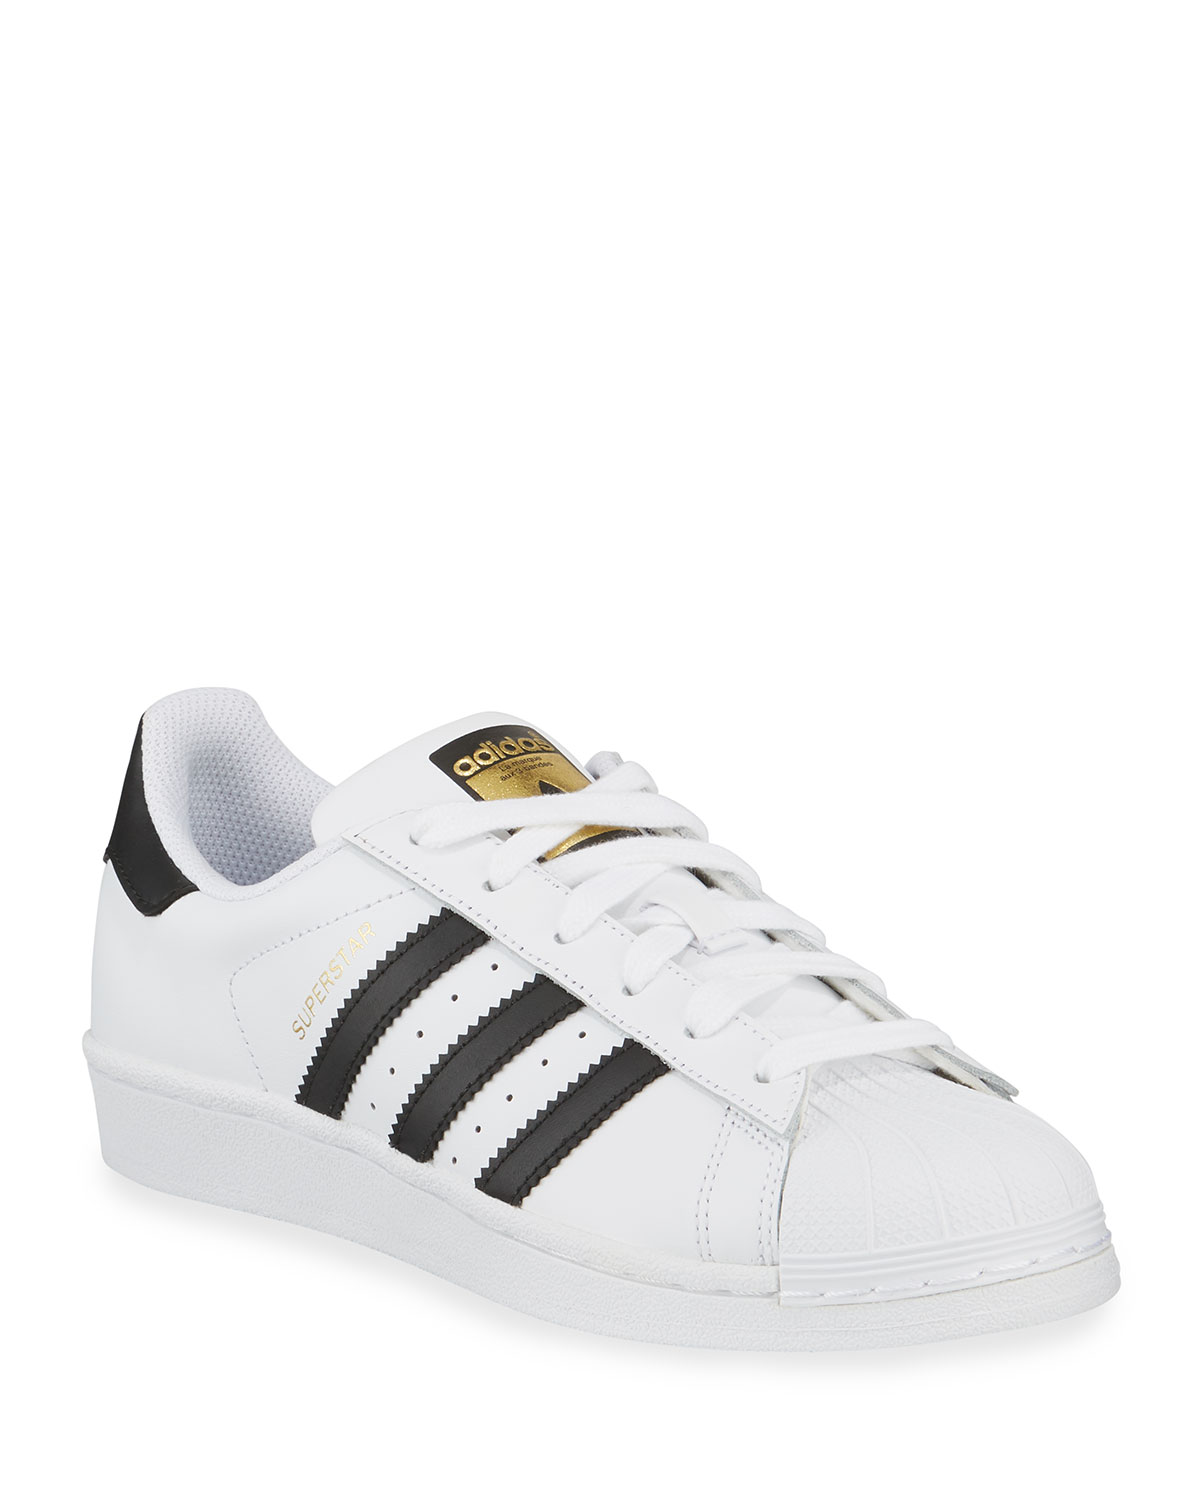 daa98fb573a6 Adidas Superstar Classic Sneakers